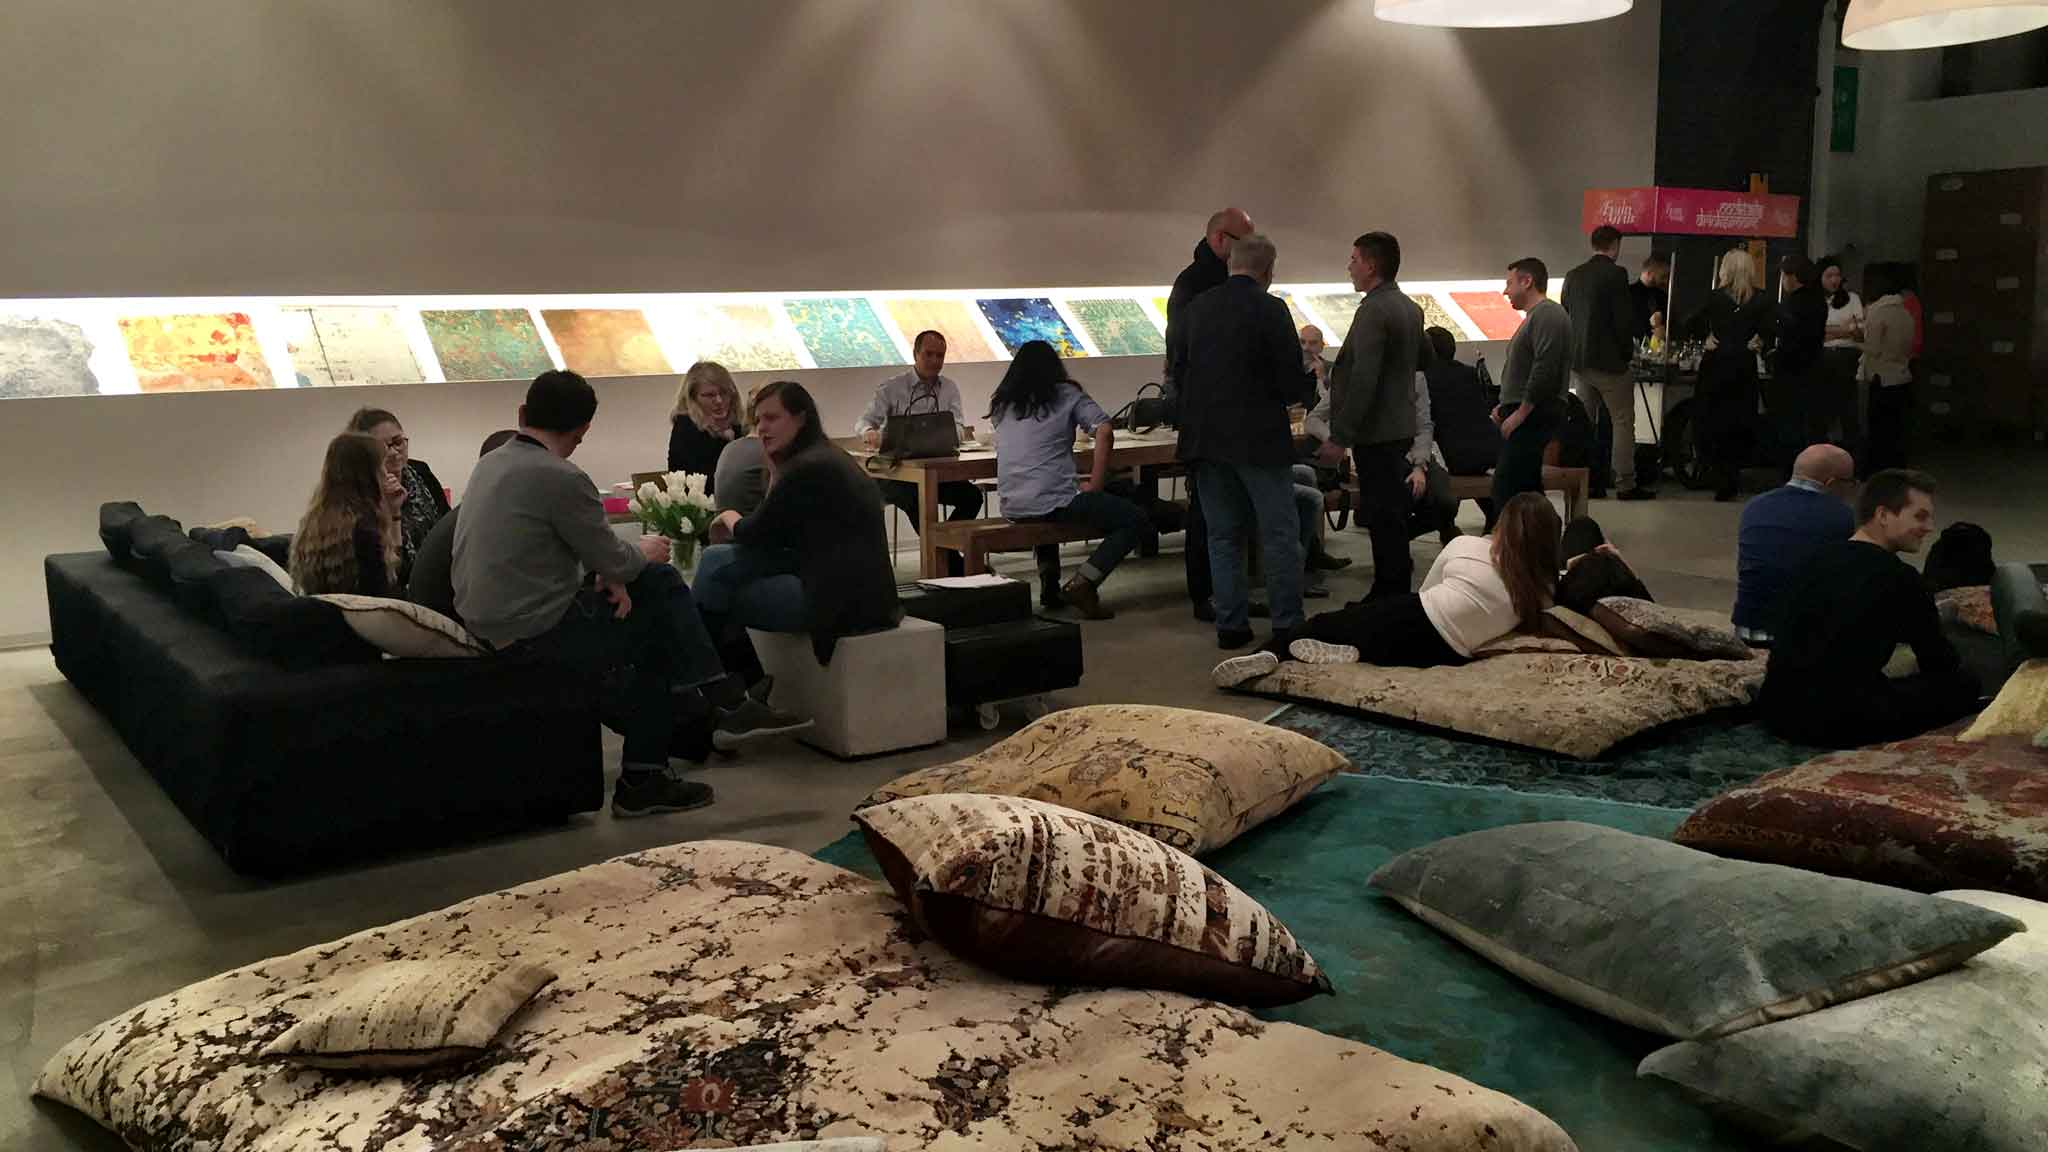 Guests and staff of Jan Kath relax after a full day during 'Family Affair' at Jan Kath | Image from The Ruggist